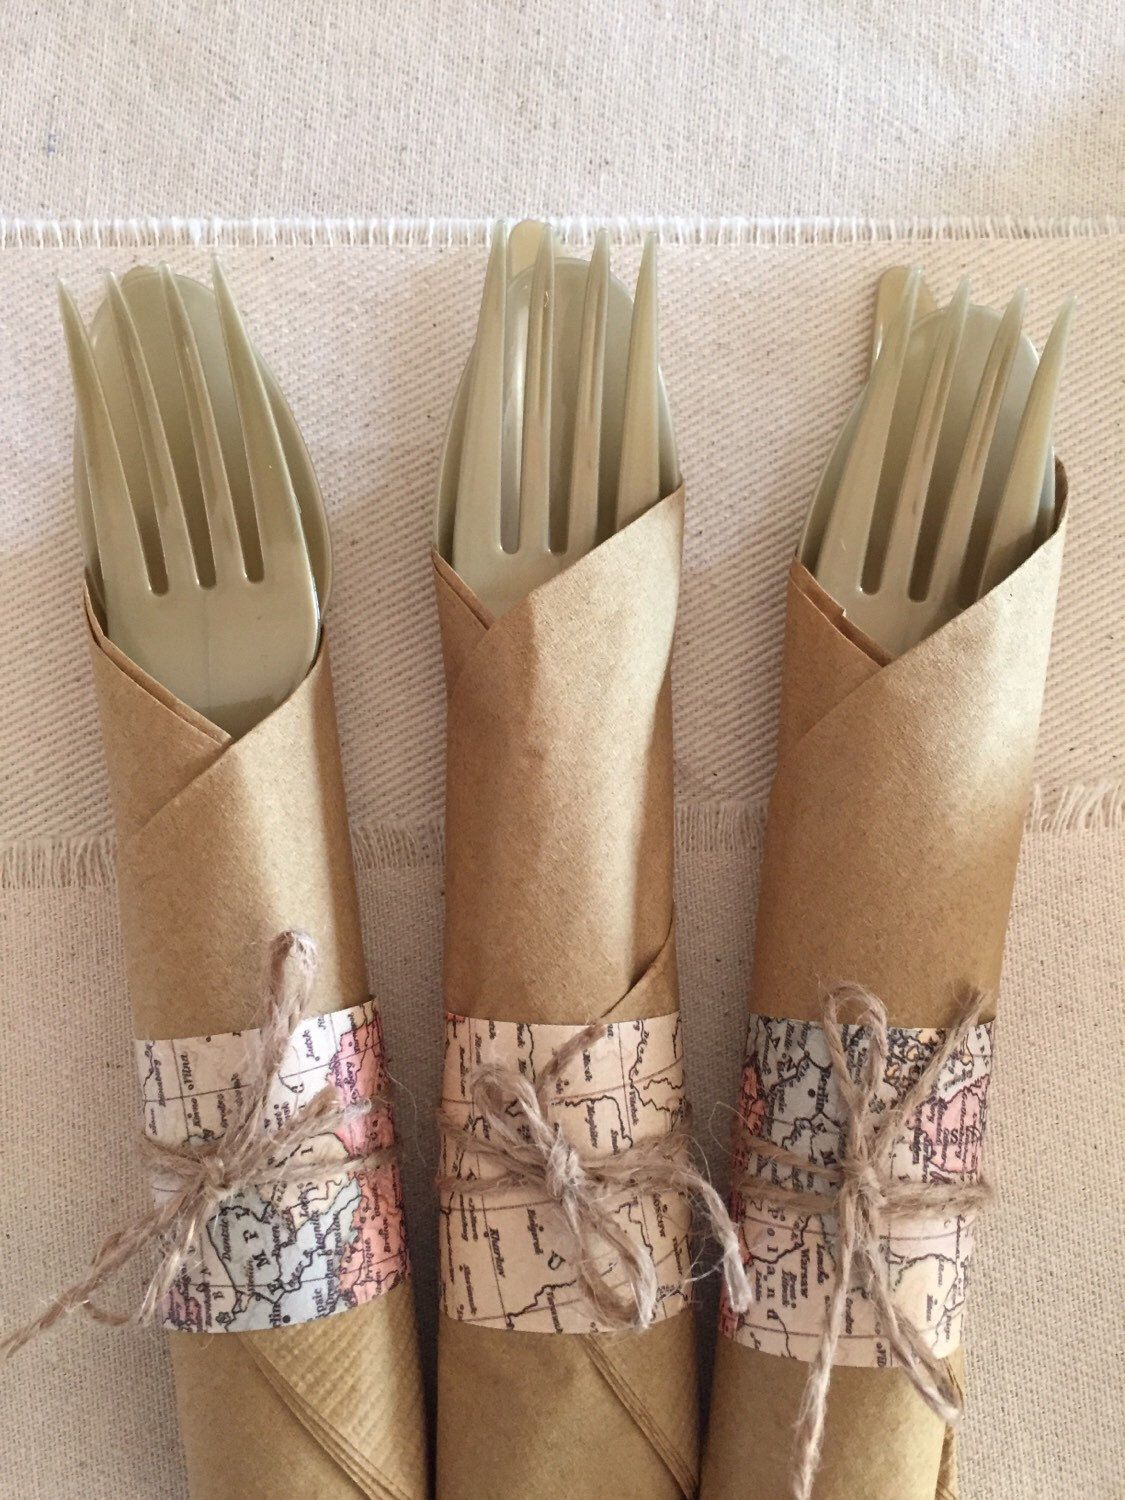 Set of 16 travel theme plastic silverware and napkin sets by lovestrungshop on Etsy https://www.etsy.com/listing/229349732/set-of-16-travel-theme-plastic